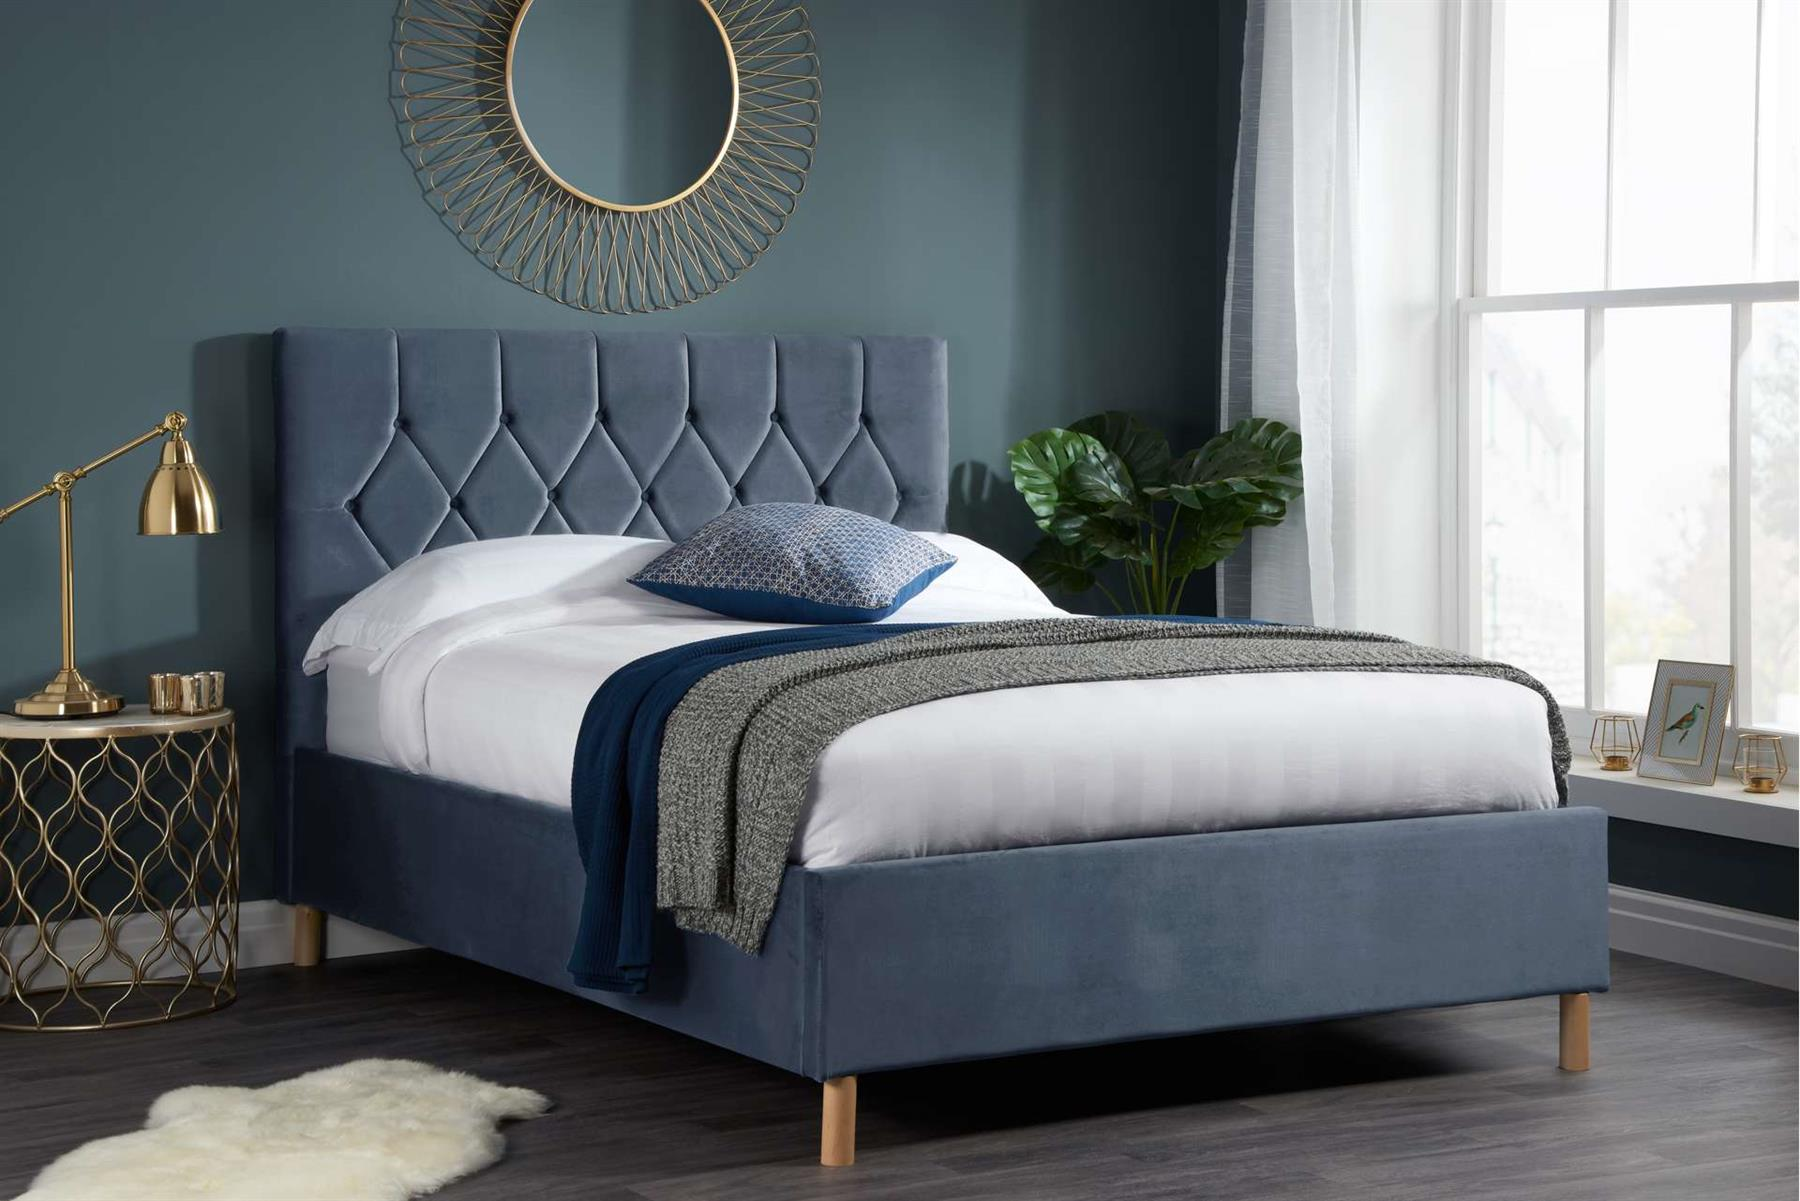 Birlea Loxley Bed Frame 120cm Small Double 4FT Grey Fabric Bedstead